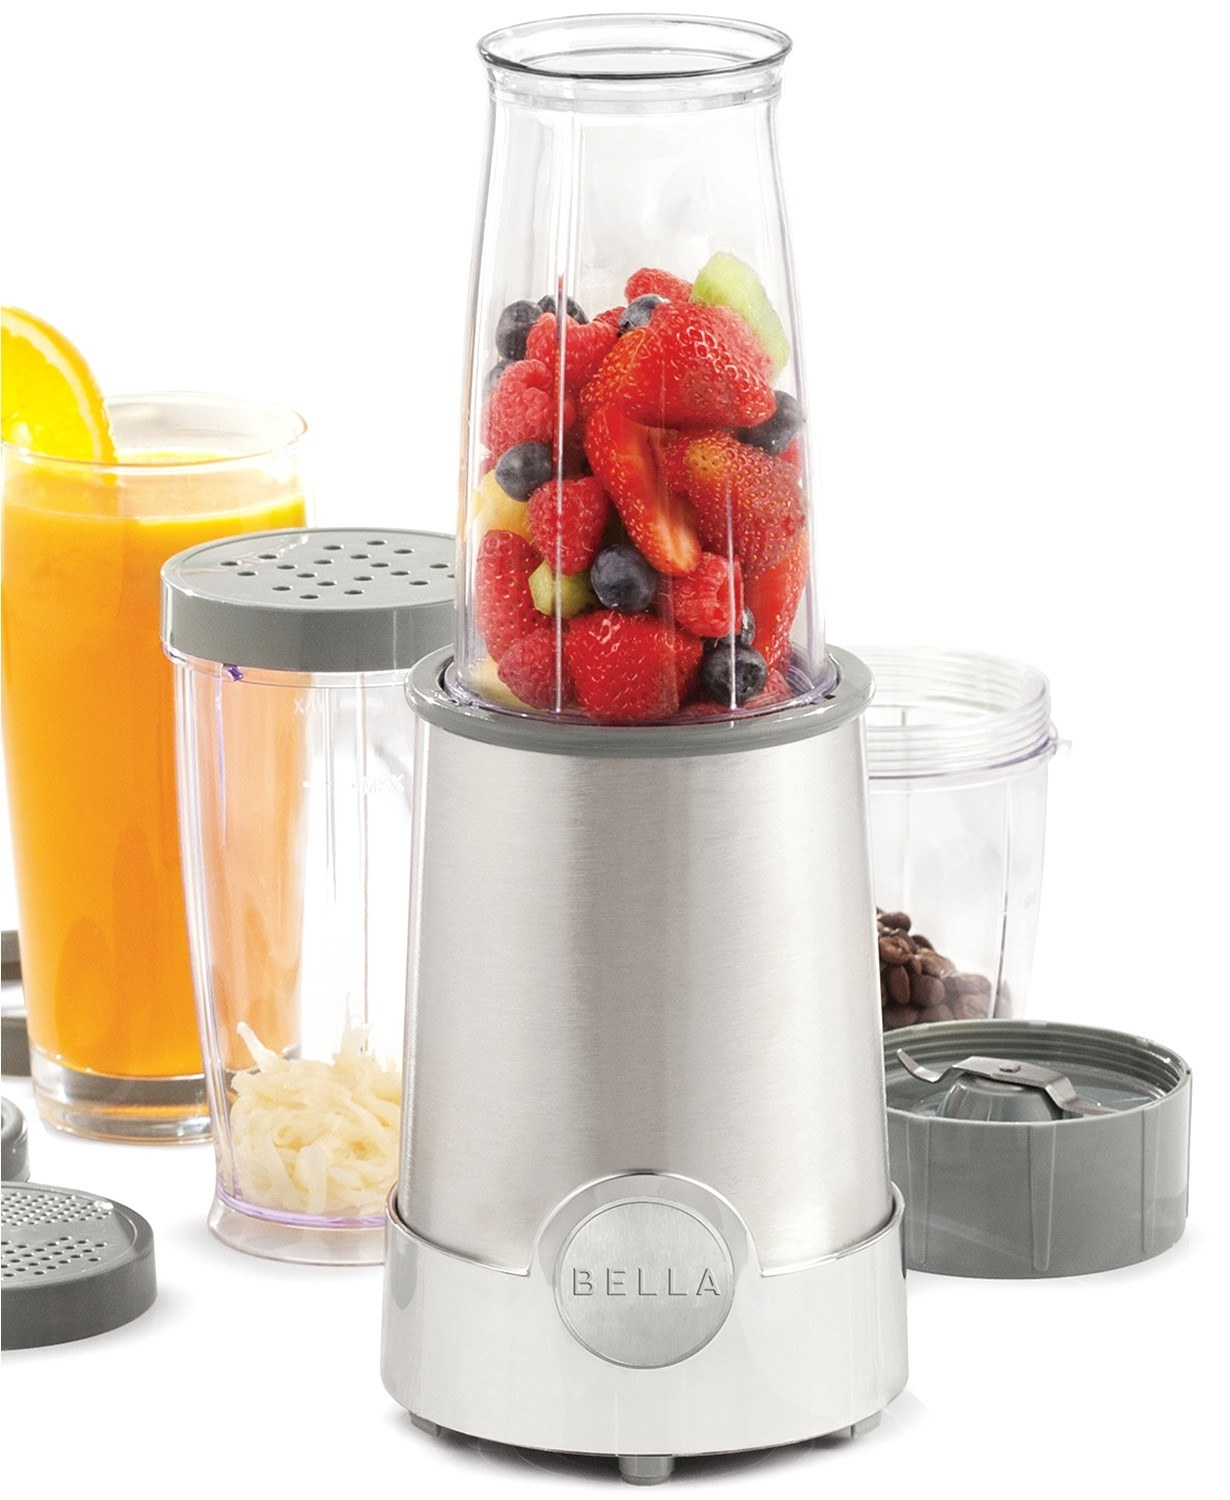 The 12-piece silver blender set which comes with various blending cups